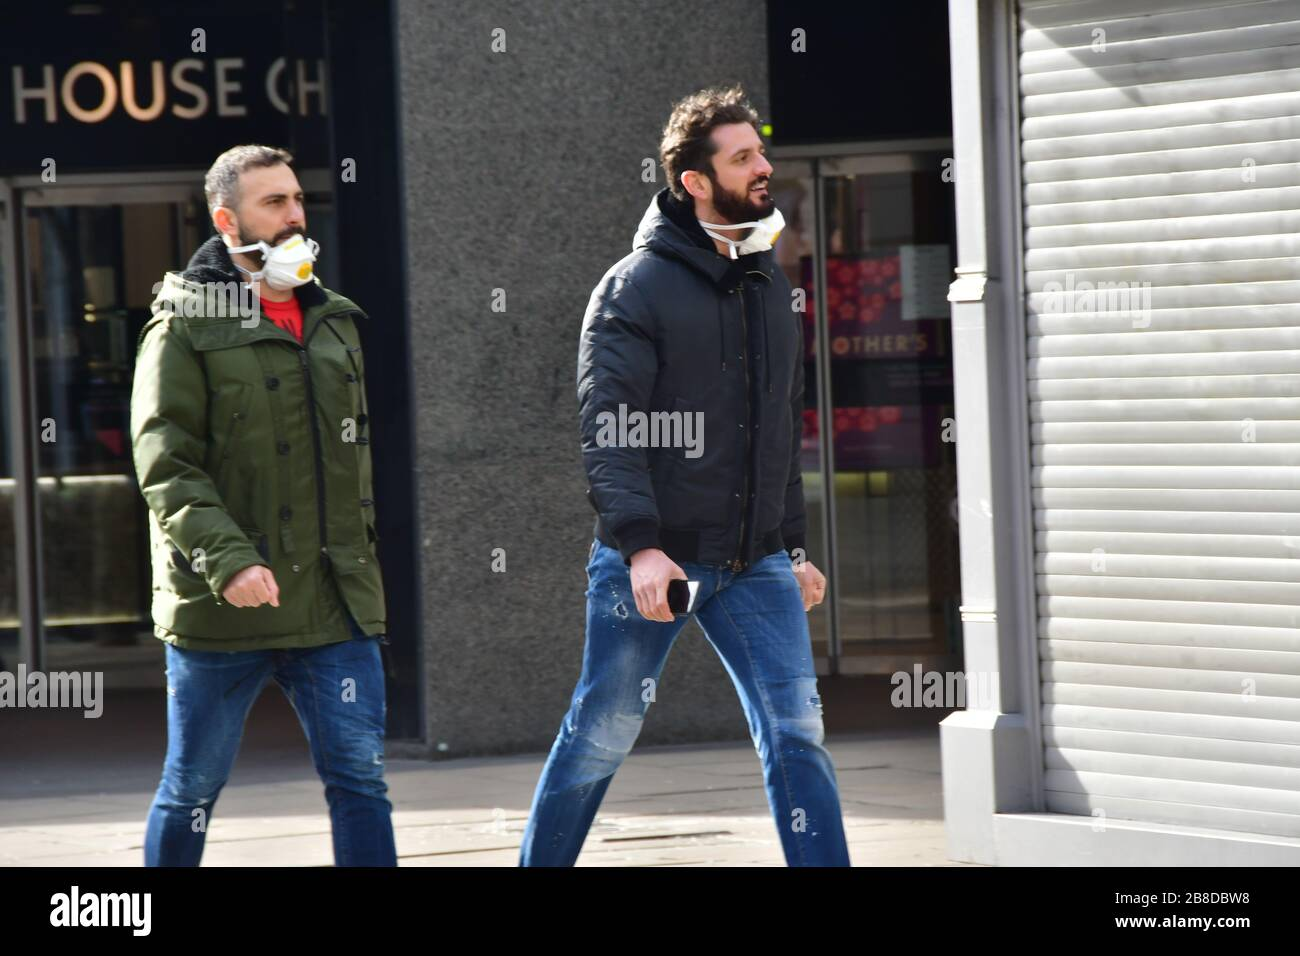 London, UK. 21st March 2020. A couple of guyus take off the wearing a mask at street during Coronavirus - Pandemic hit Oxford Street many shops closure a few open but empty on 21 March 2020, UK. Credit: Picture Capital/Alamy Live News Credit: Picture Capital/Alamy Live News Stock Photo